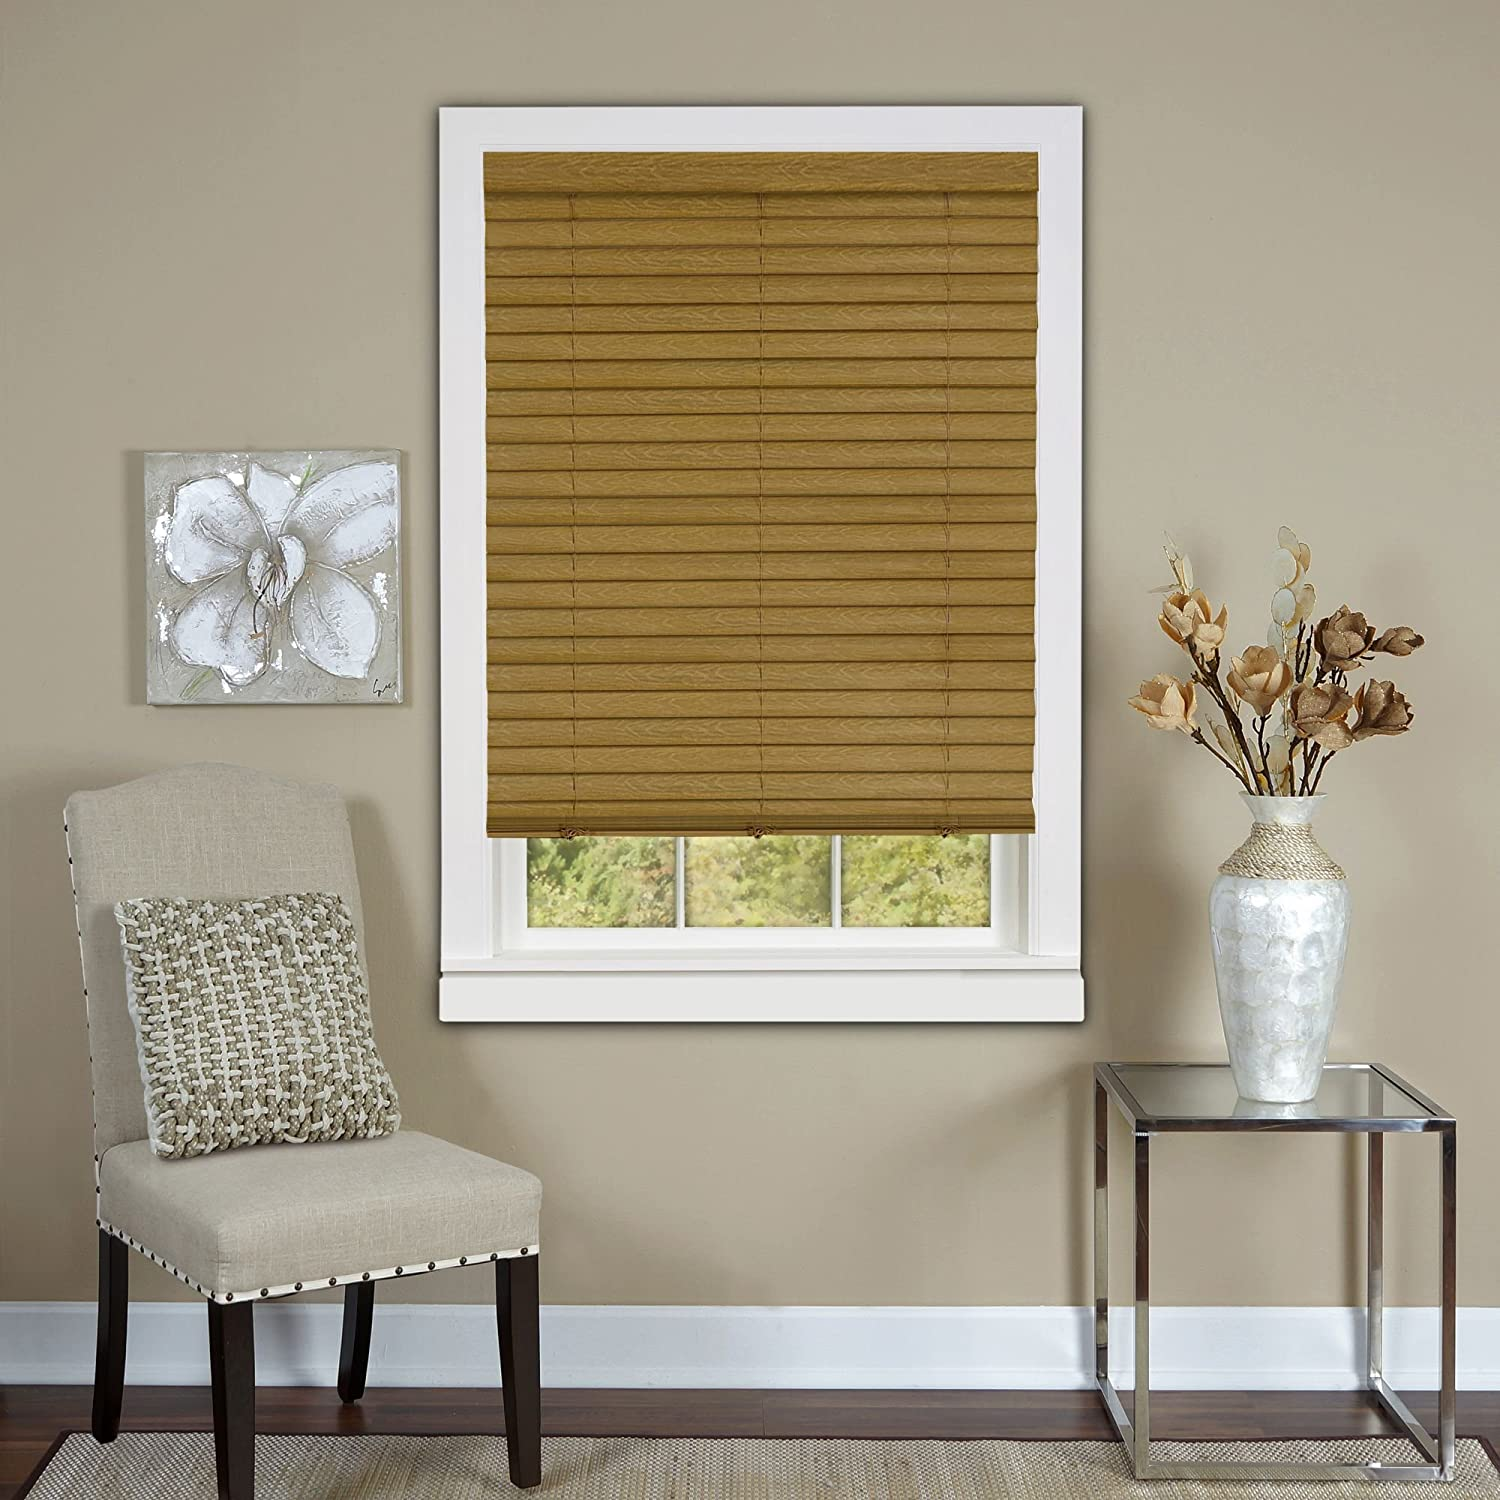 inch bali gallery blindsbali menards mounted wall faux blinds bathroom window wood white walmart cordless